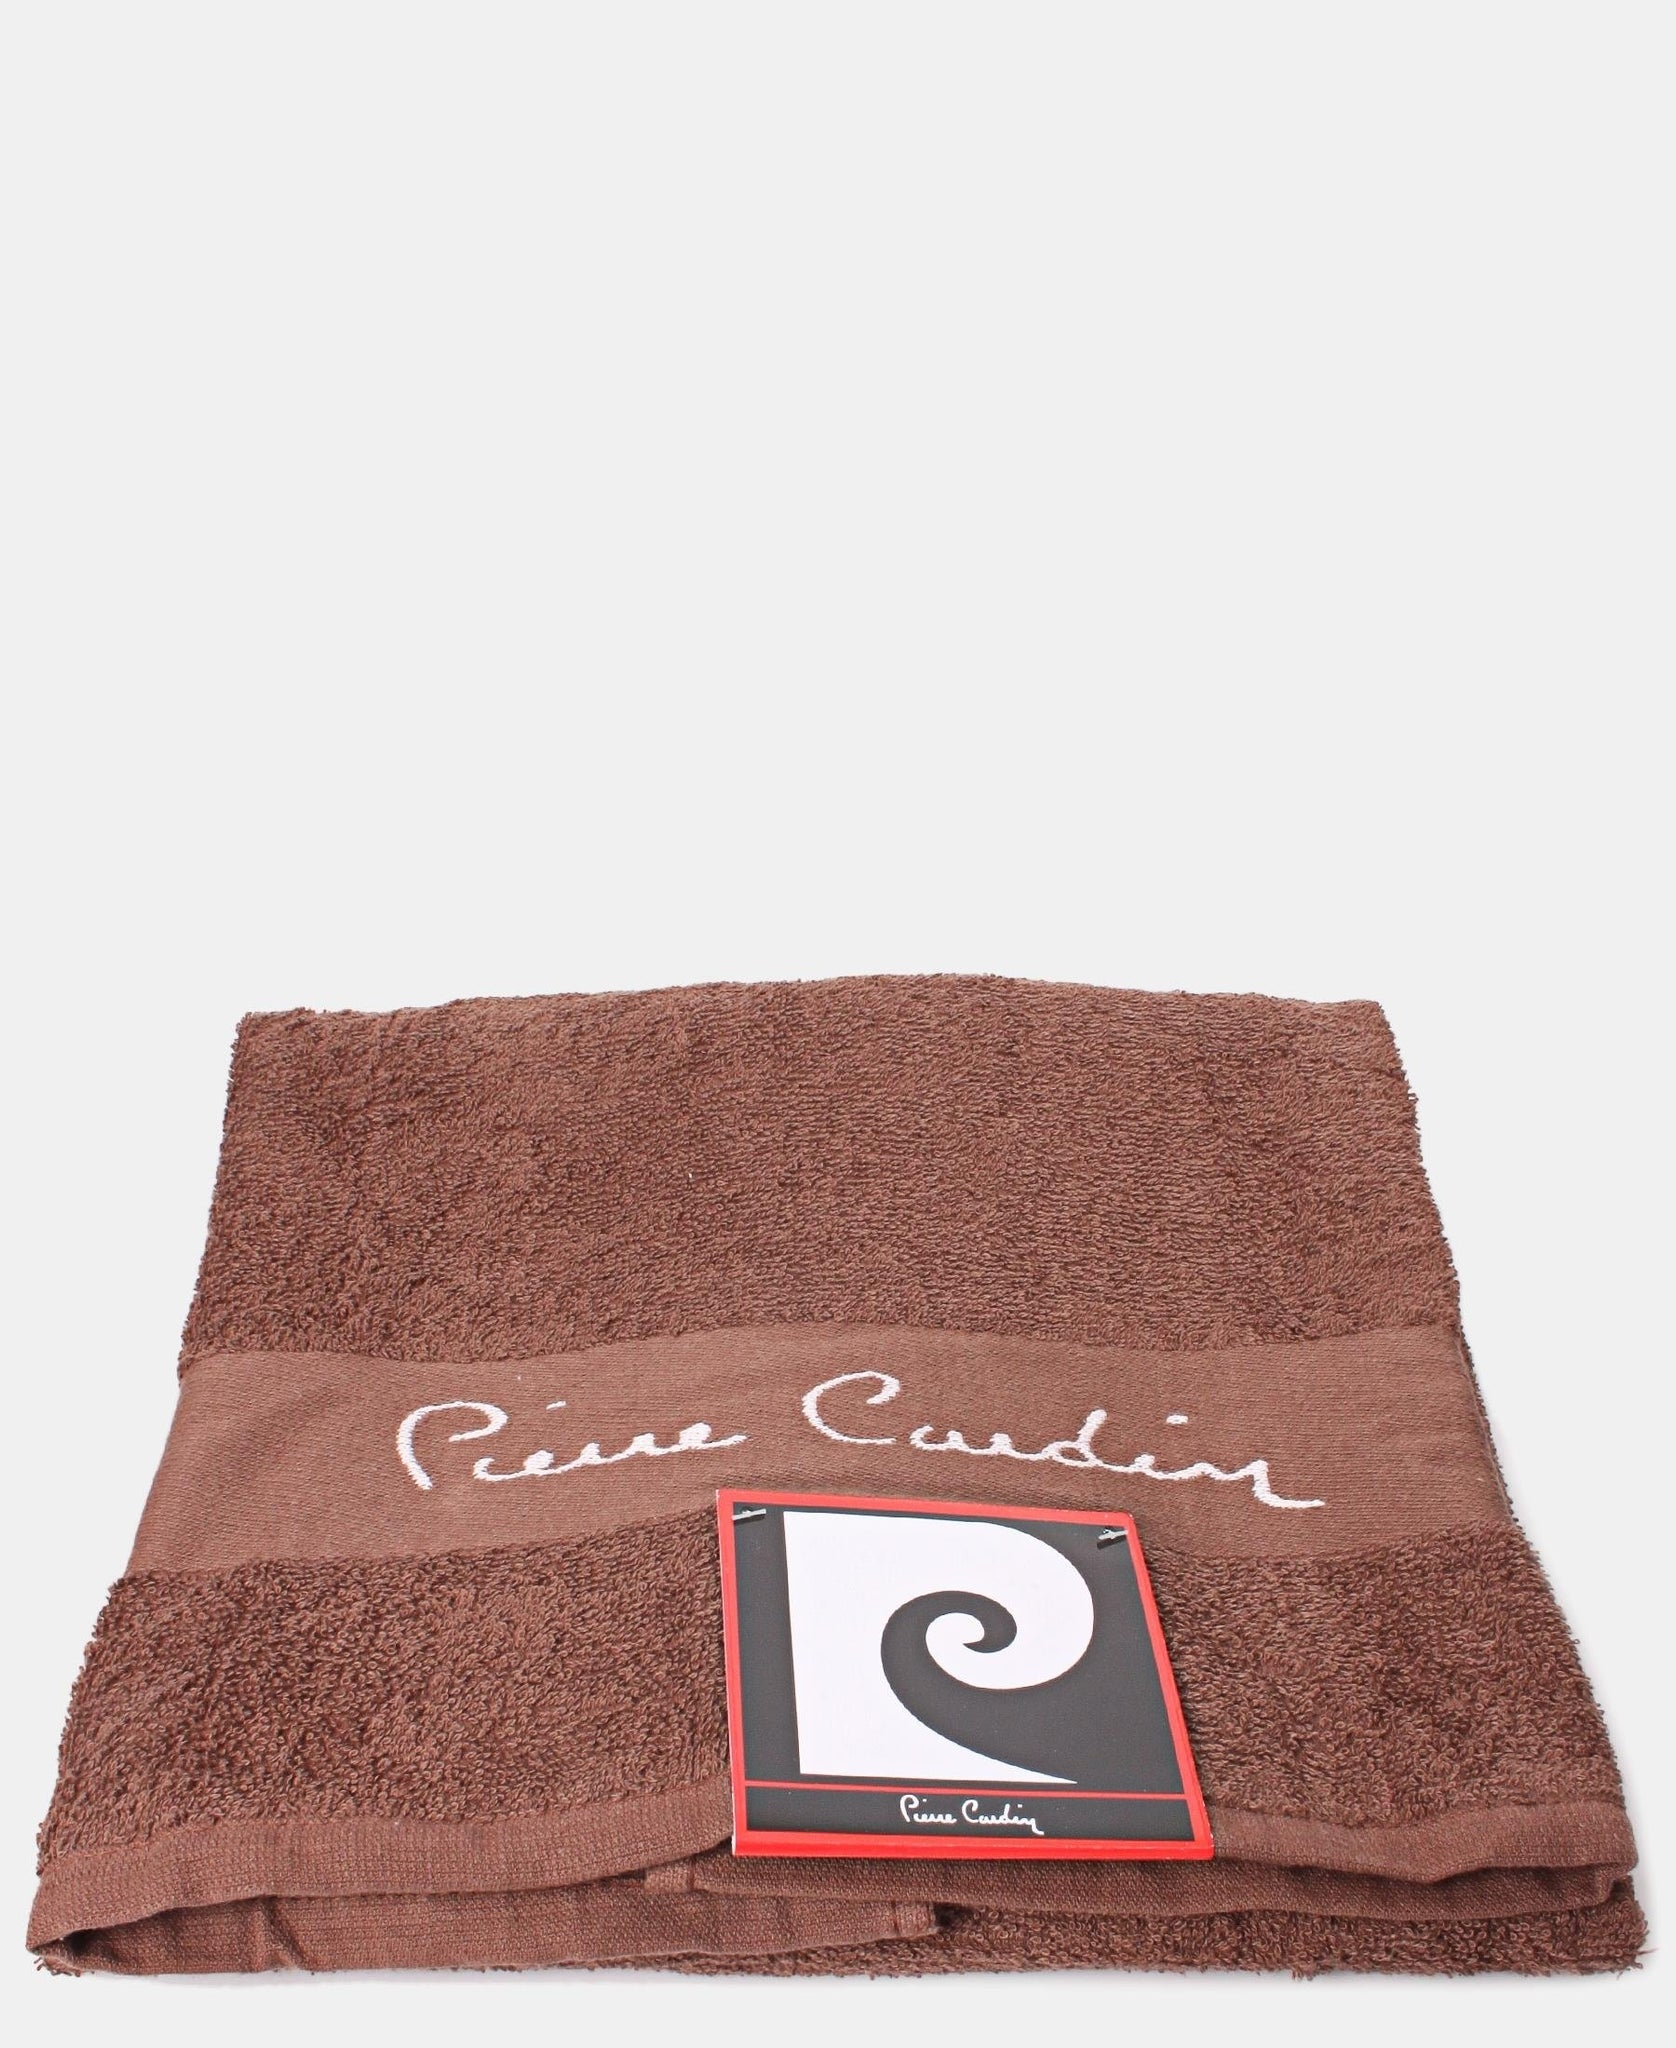 70X130cm Jacquard Border Bath Towel - Brown